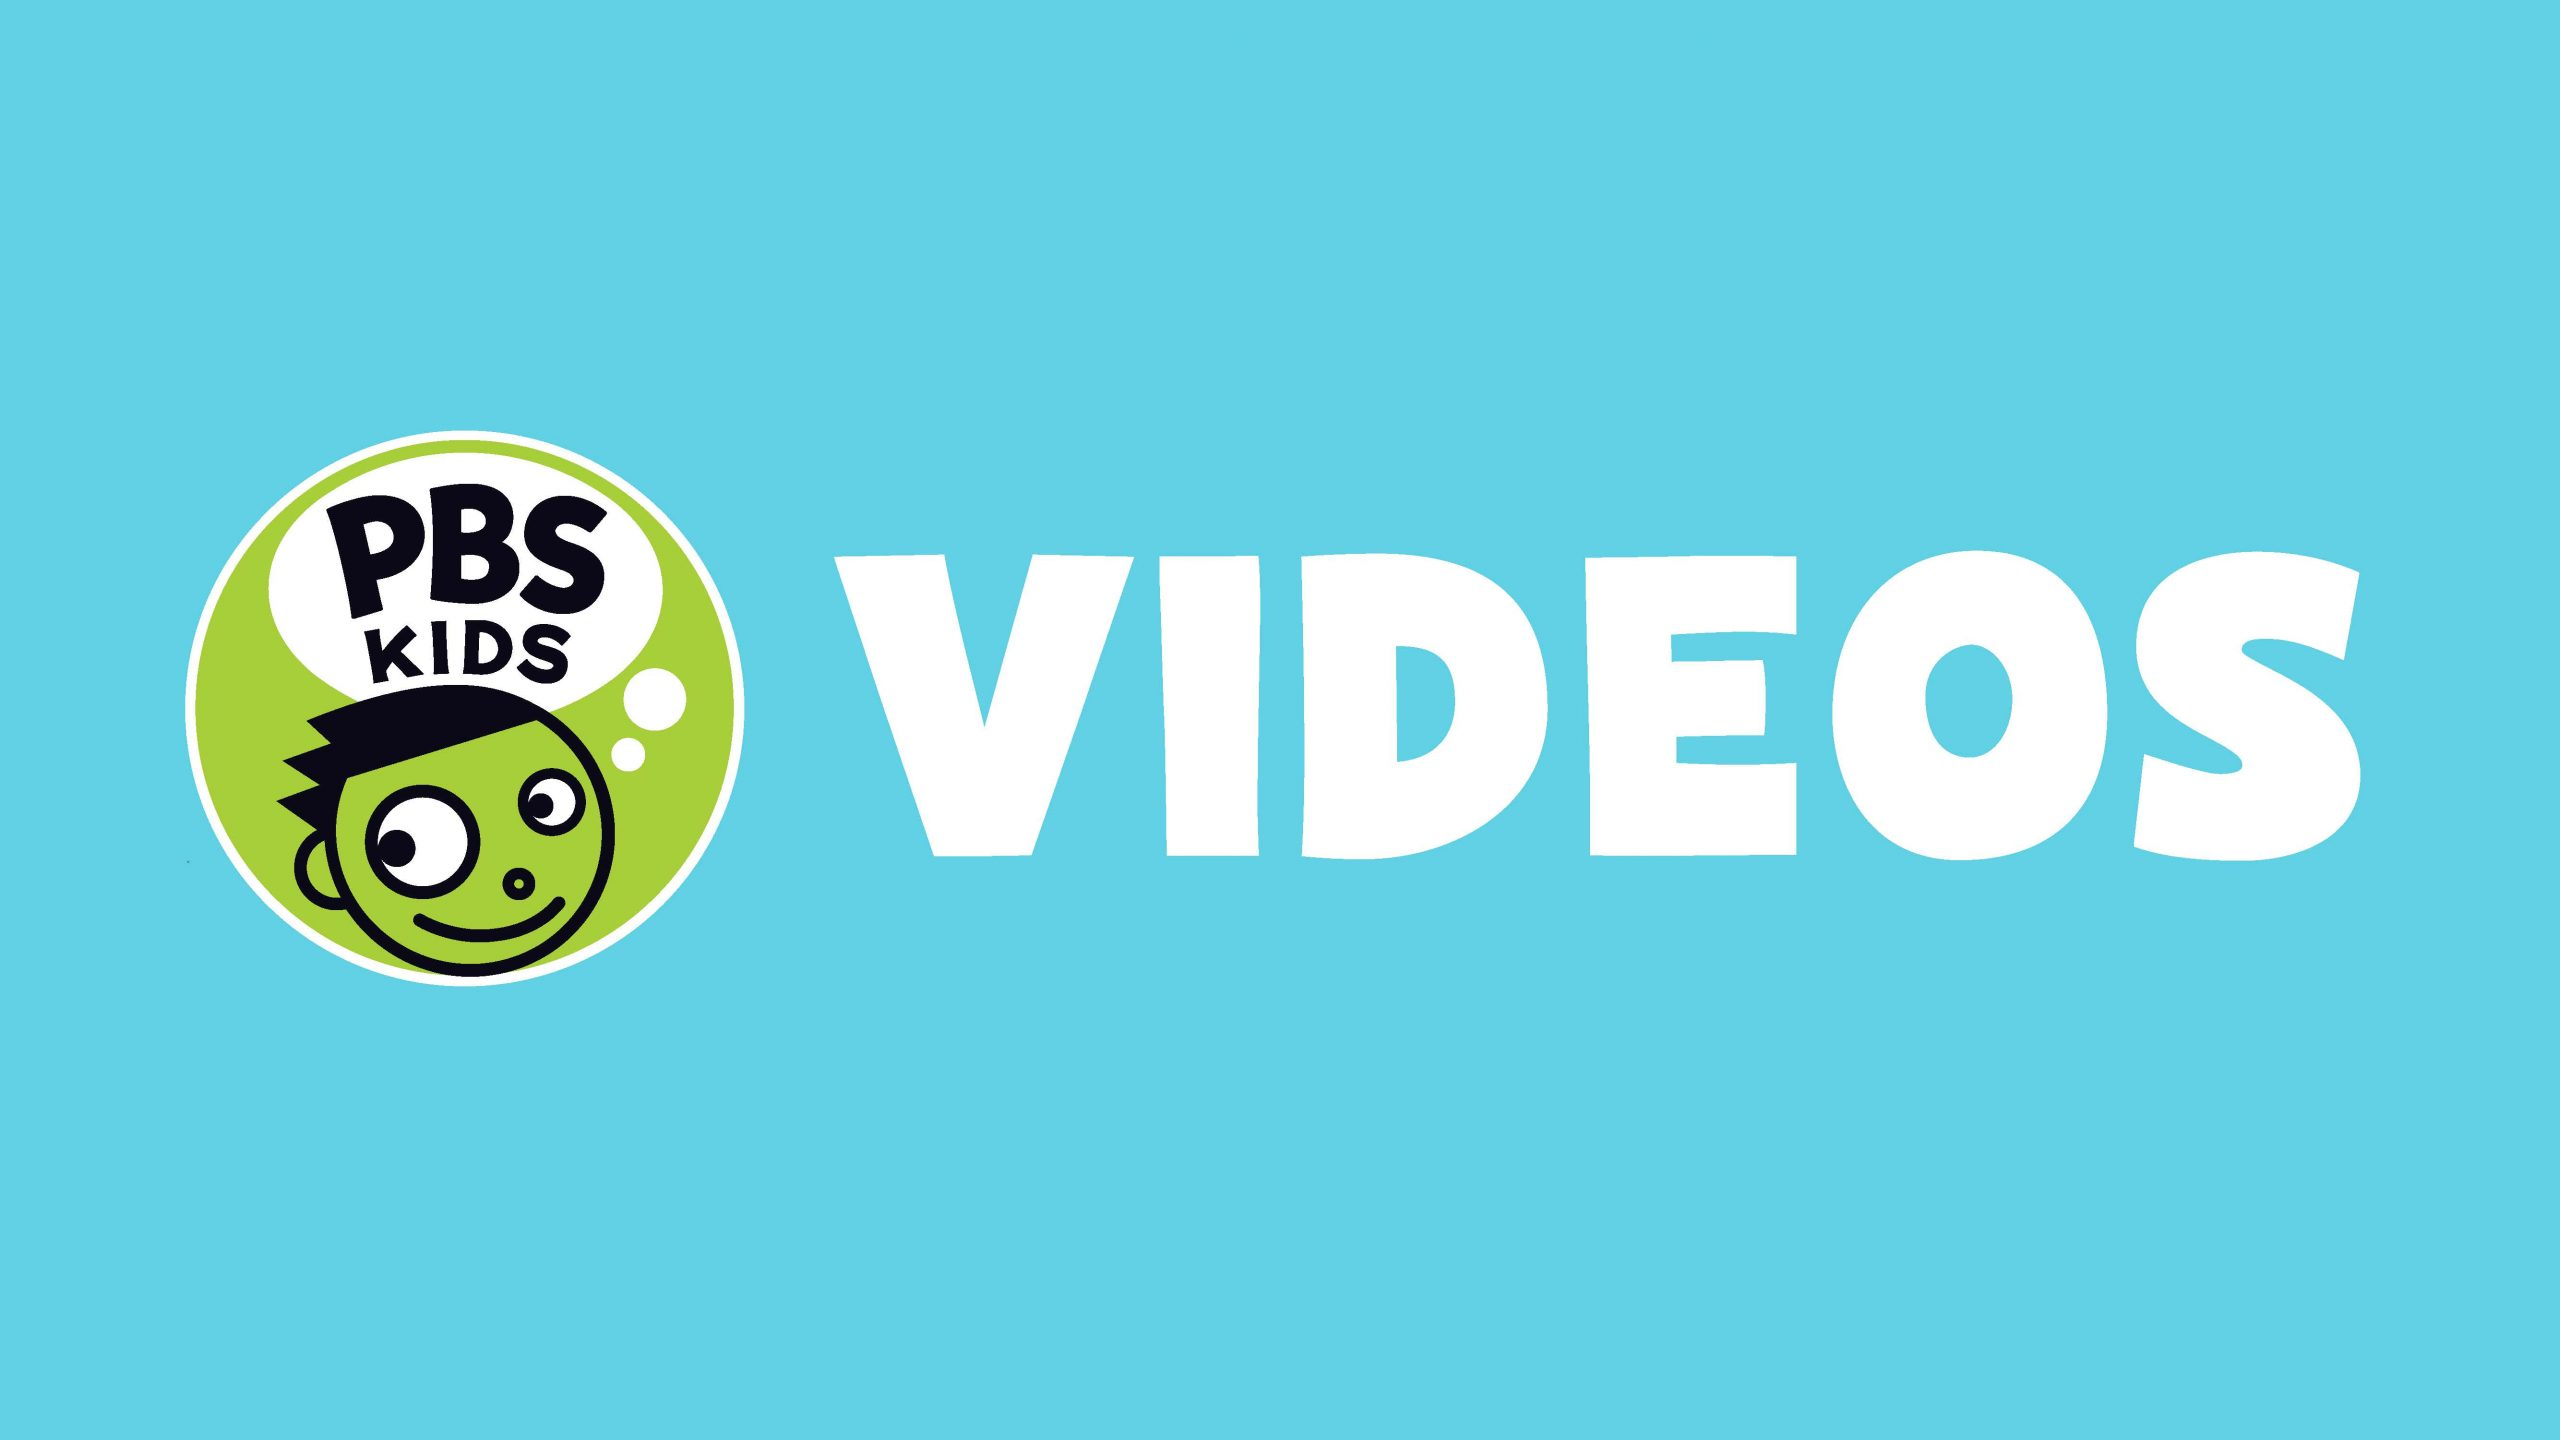 PBS KIDS logo with the word VIDEOS on a light-blue background.